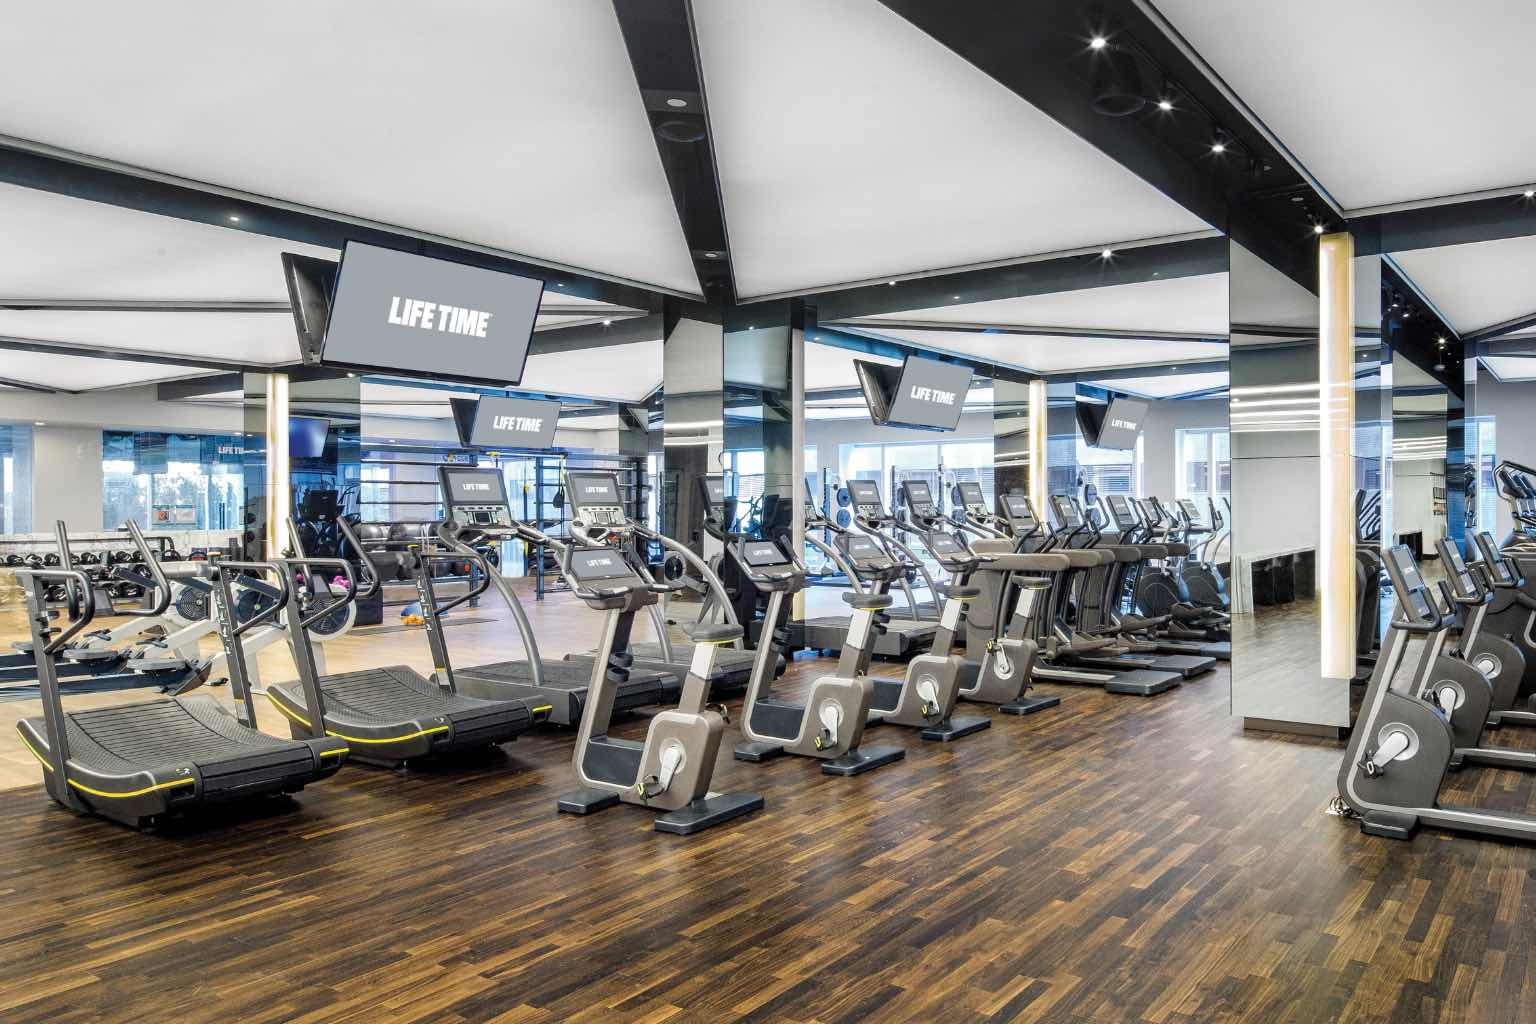 Rows of cardio equipment and televisions at life time